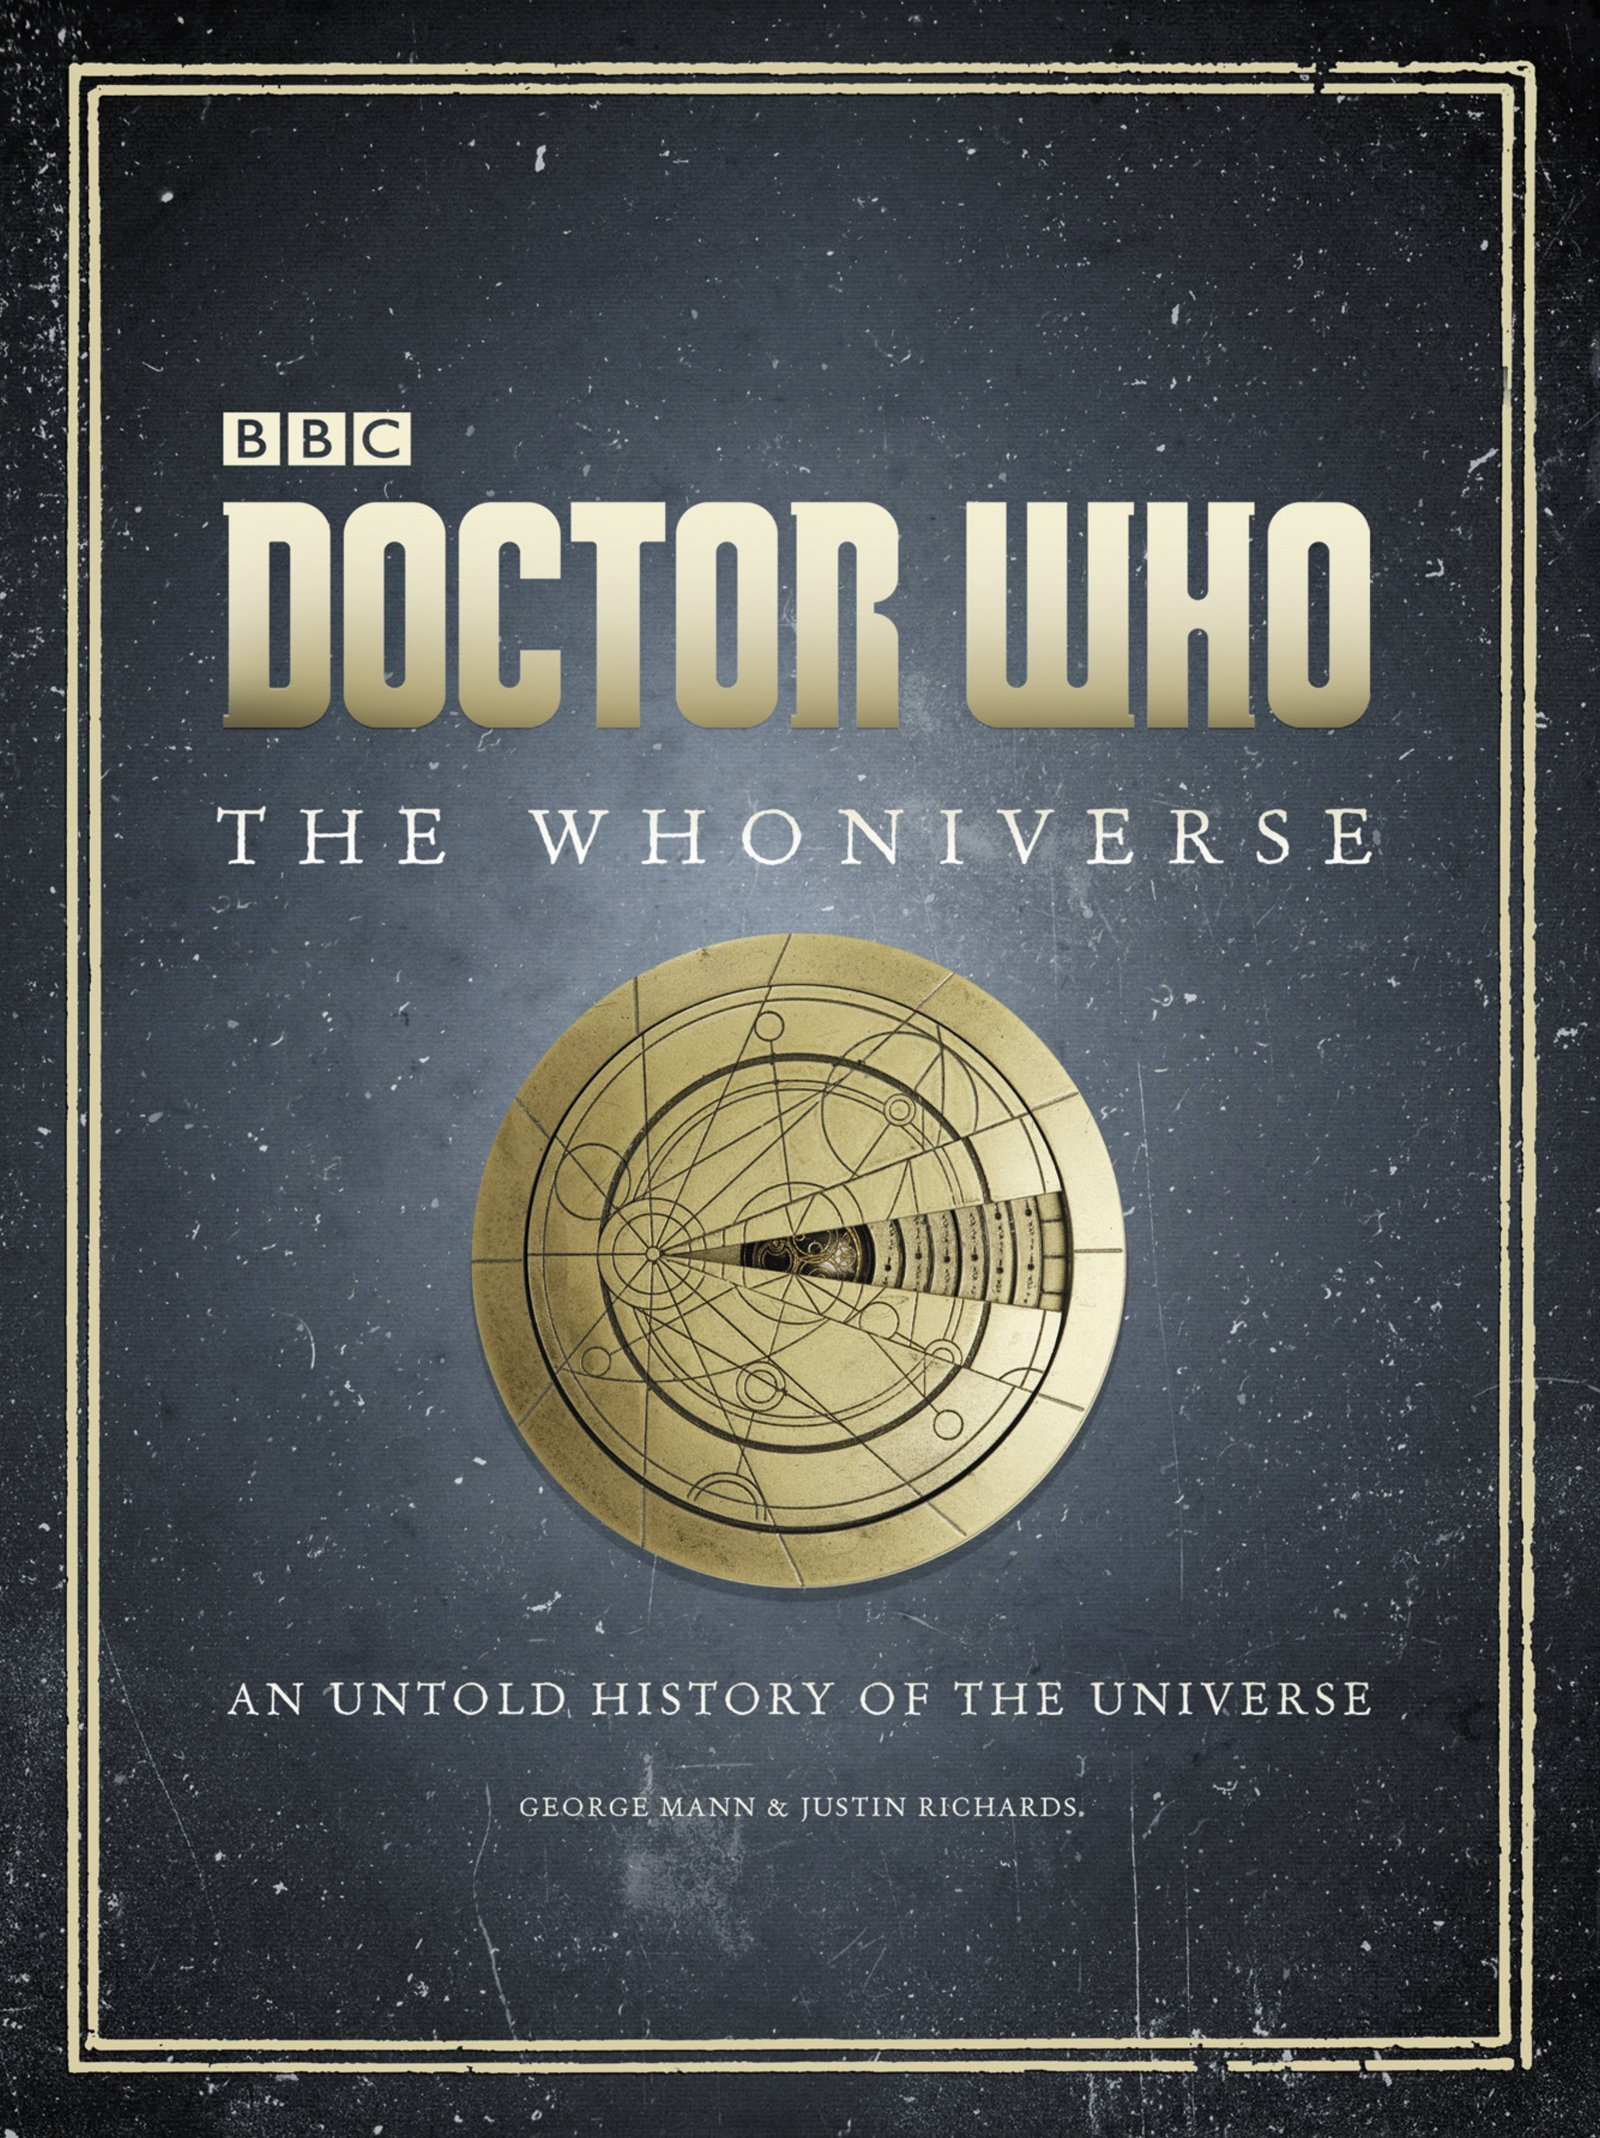 The Whoniverse (Credit: BBC Books)